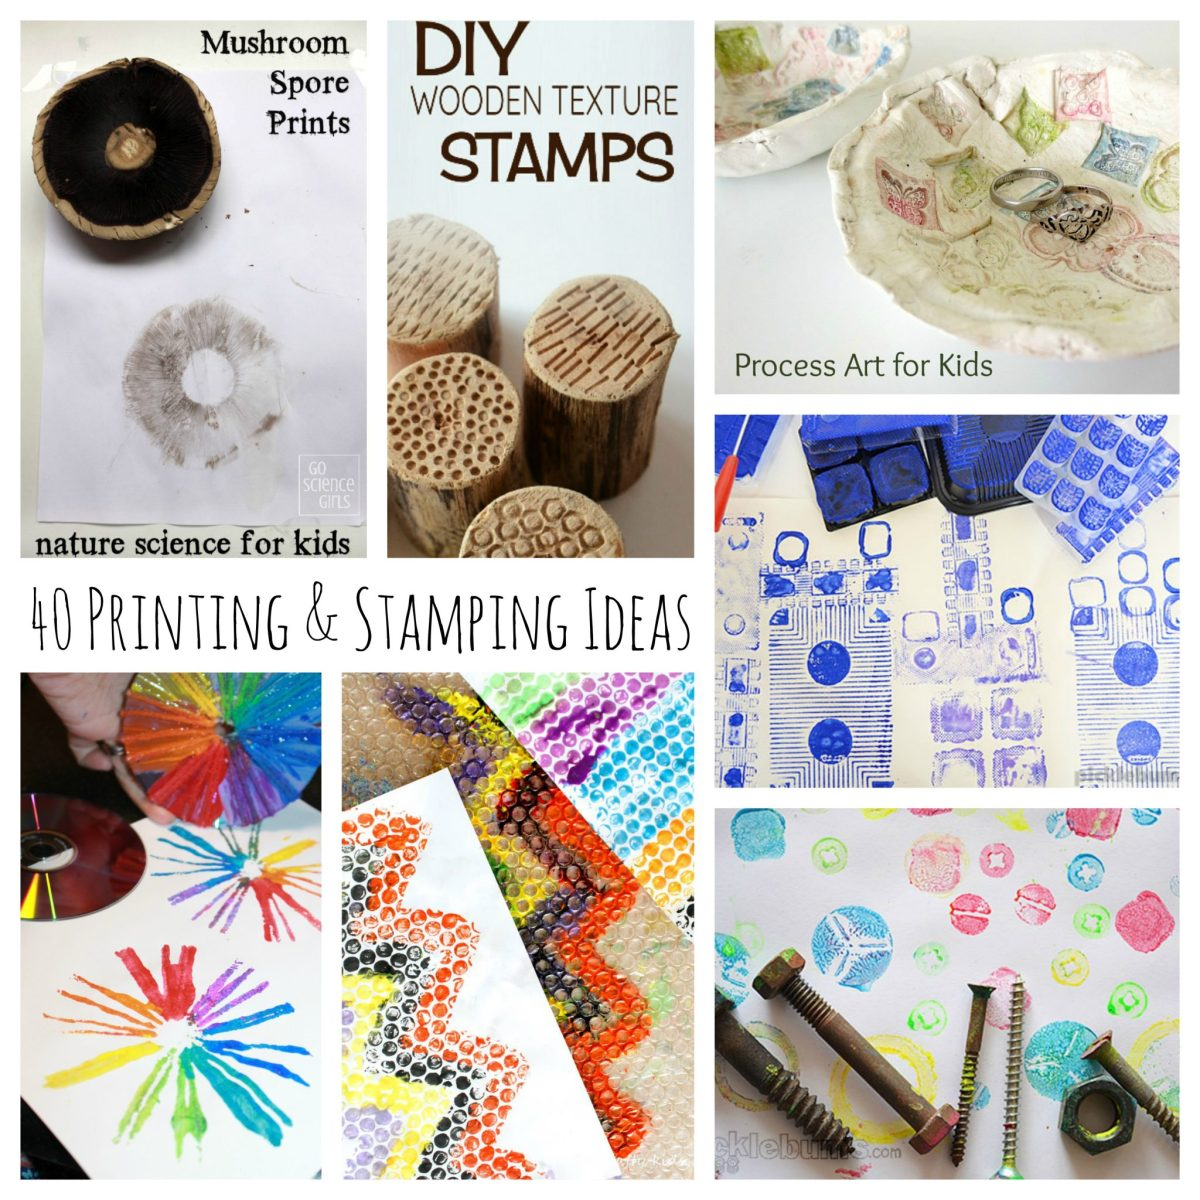 40 Printmaking and Stamping Ideas For Kids